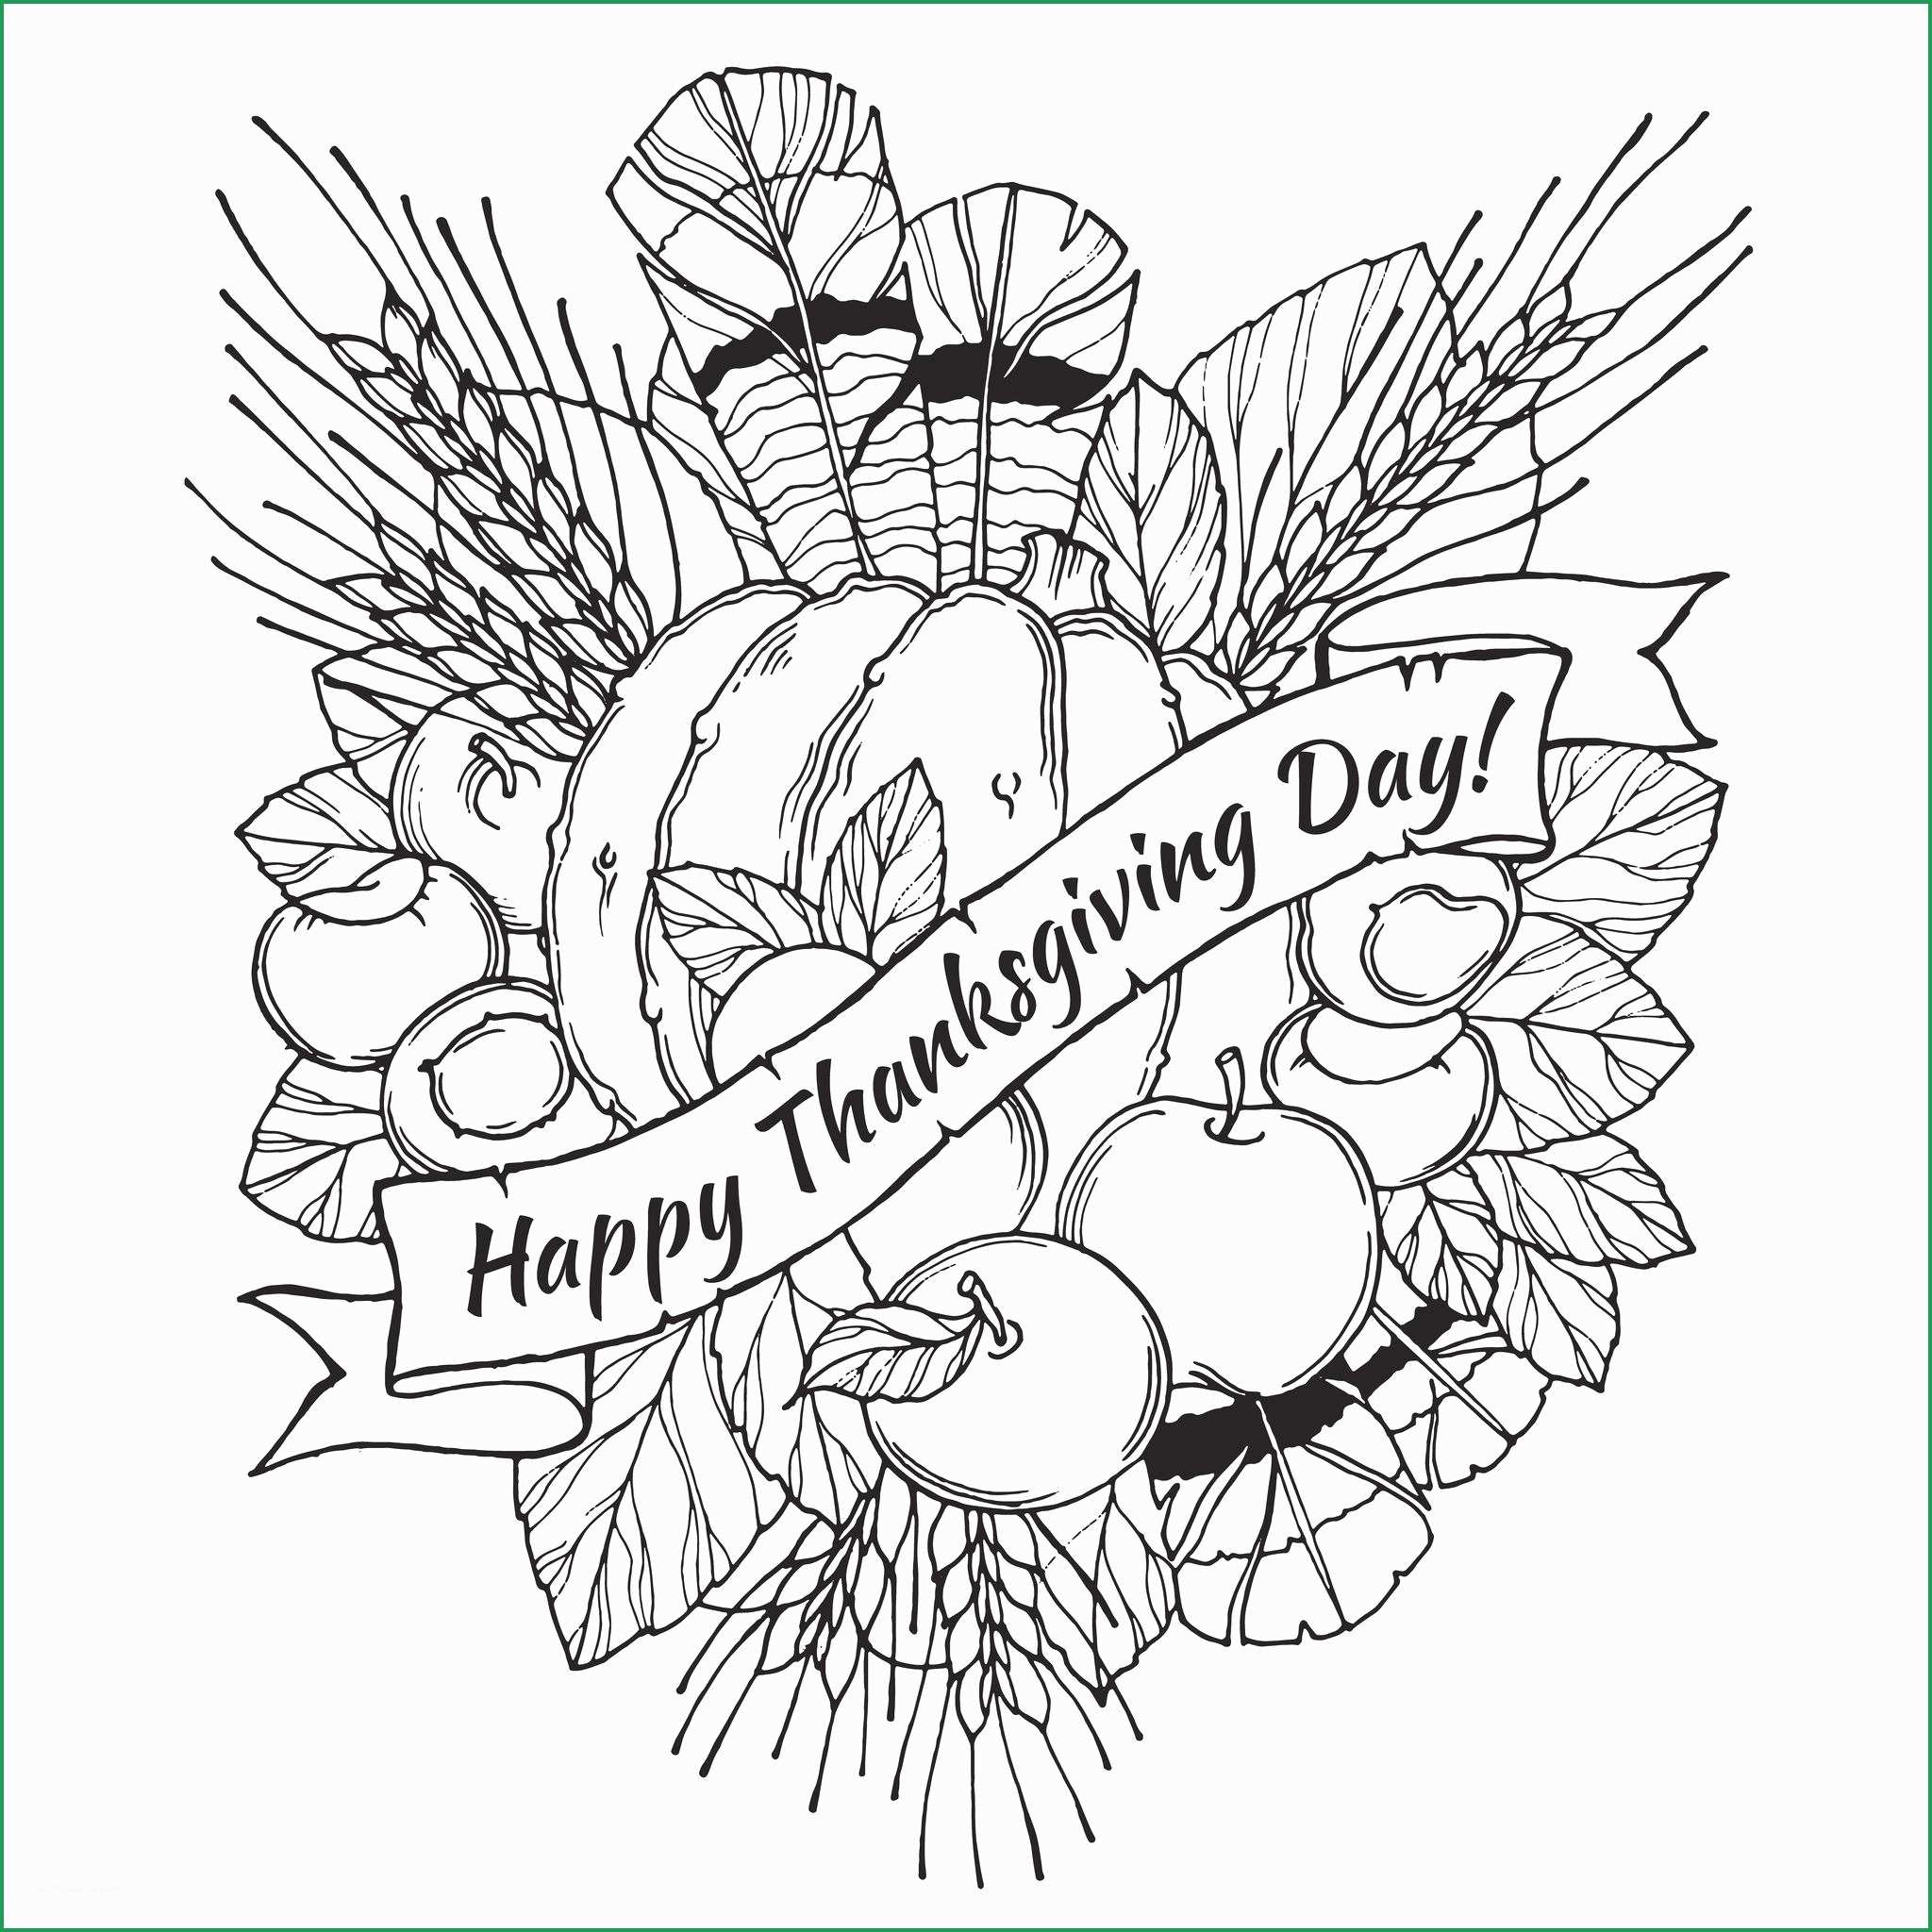 Coloring Page ~ Thanksgiving Coloring Book Page Free Printable For - Thanksgiving Printable Books Free